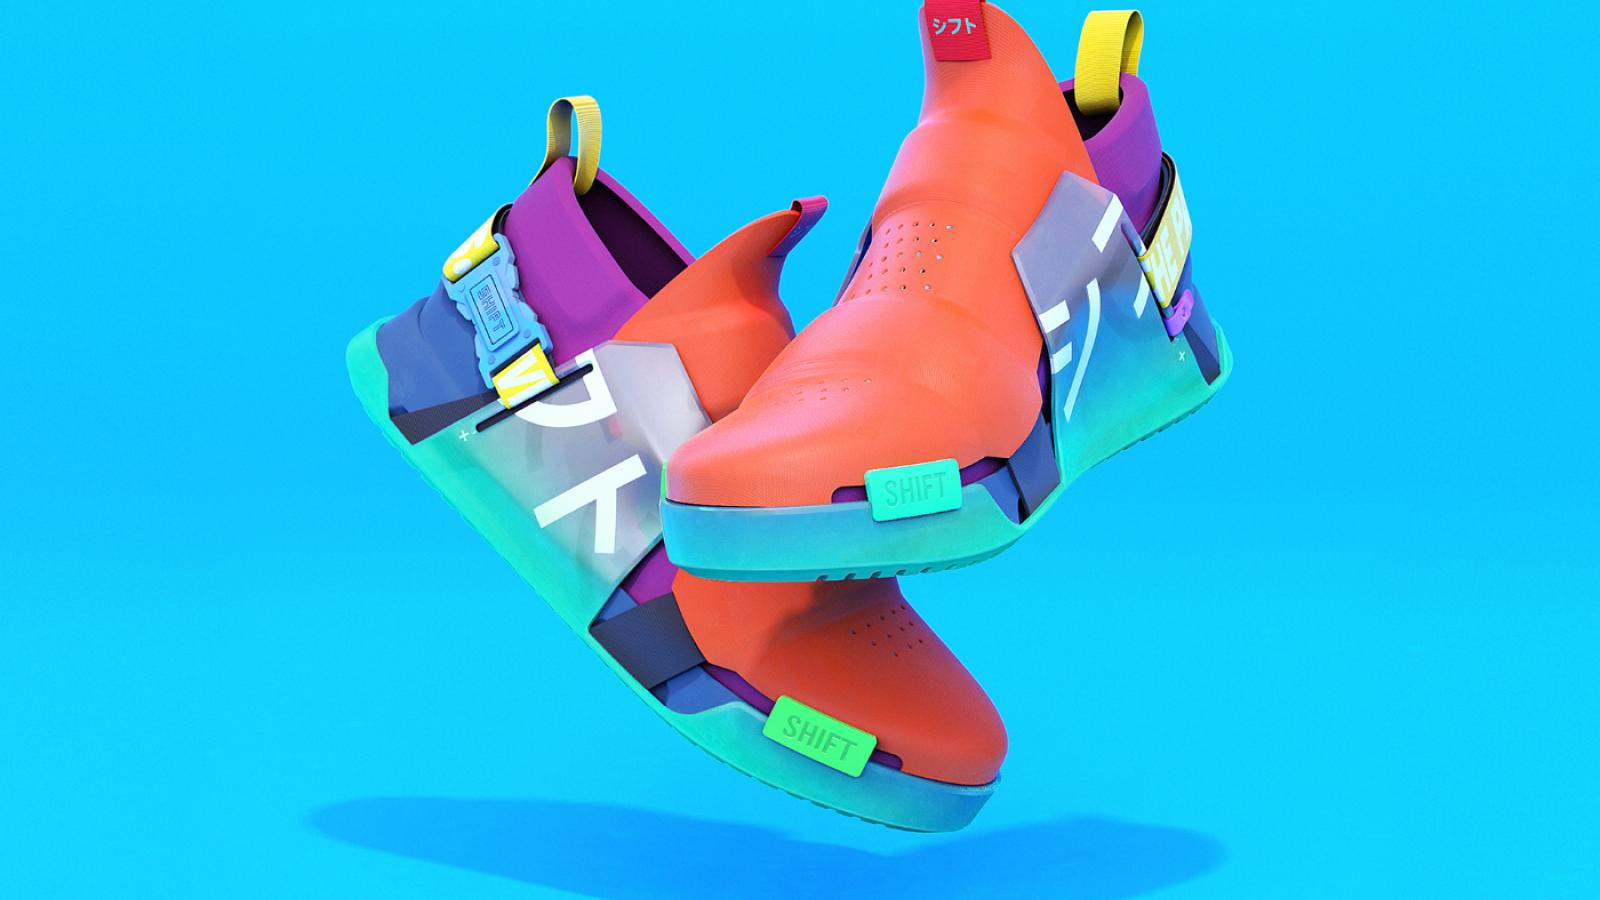 Sneaker Design: SHIFT F1